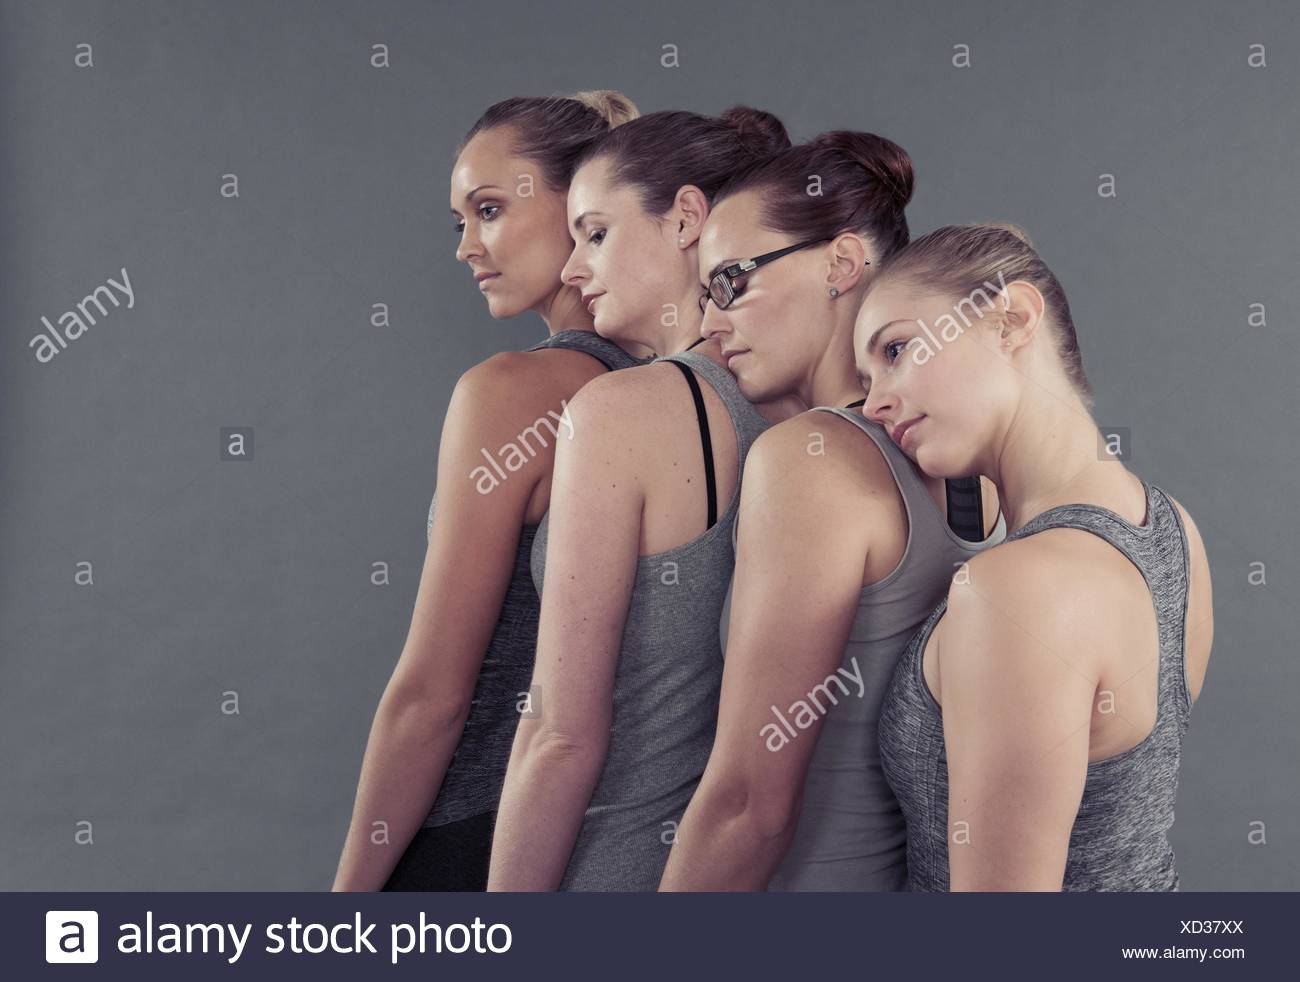 Young women in a row, leaning on each other,  grey background - Stock Image